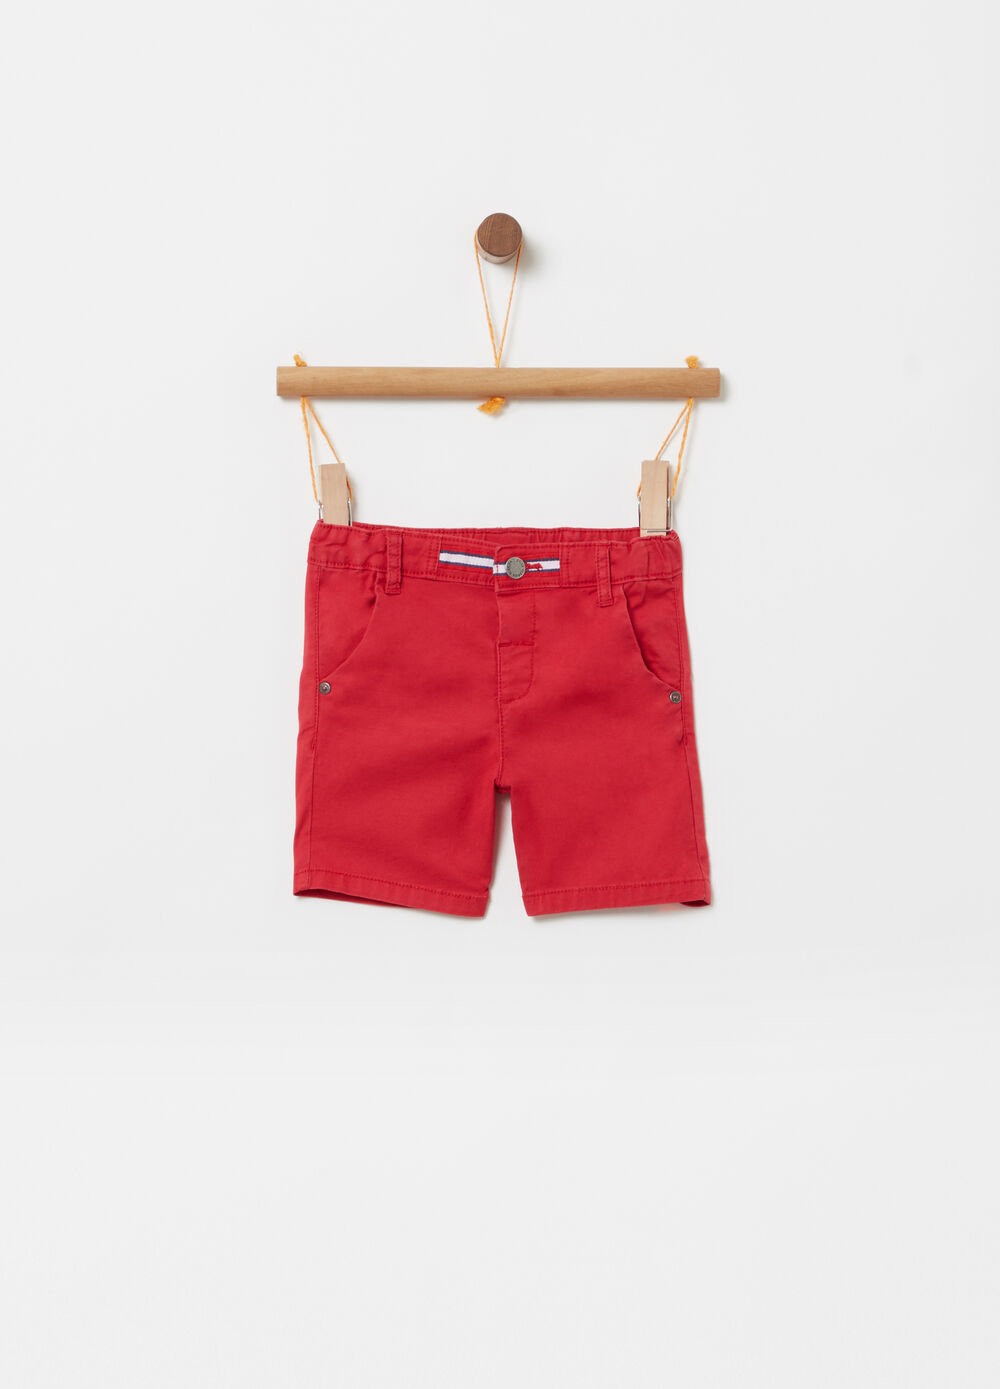 Shorts with striped ribbing and pockets